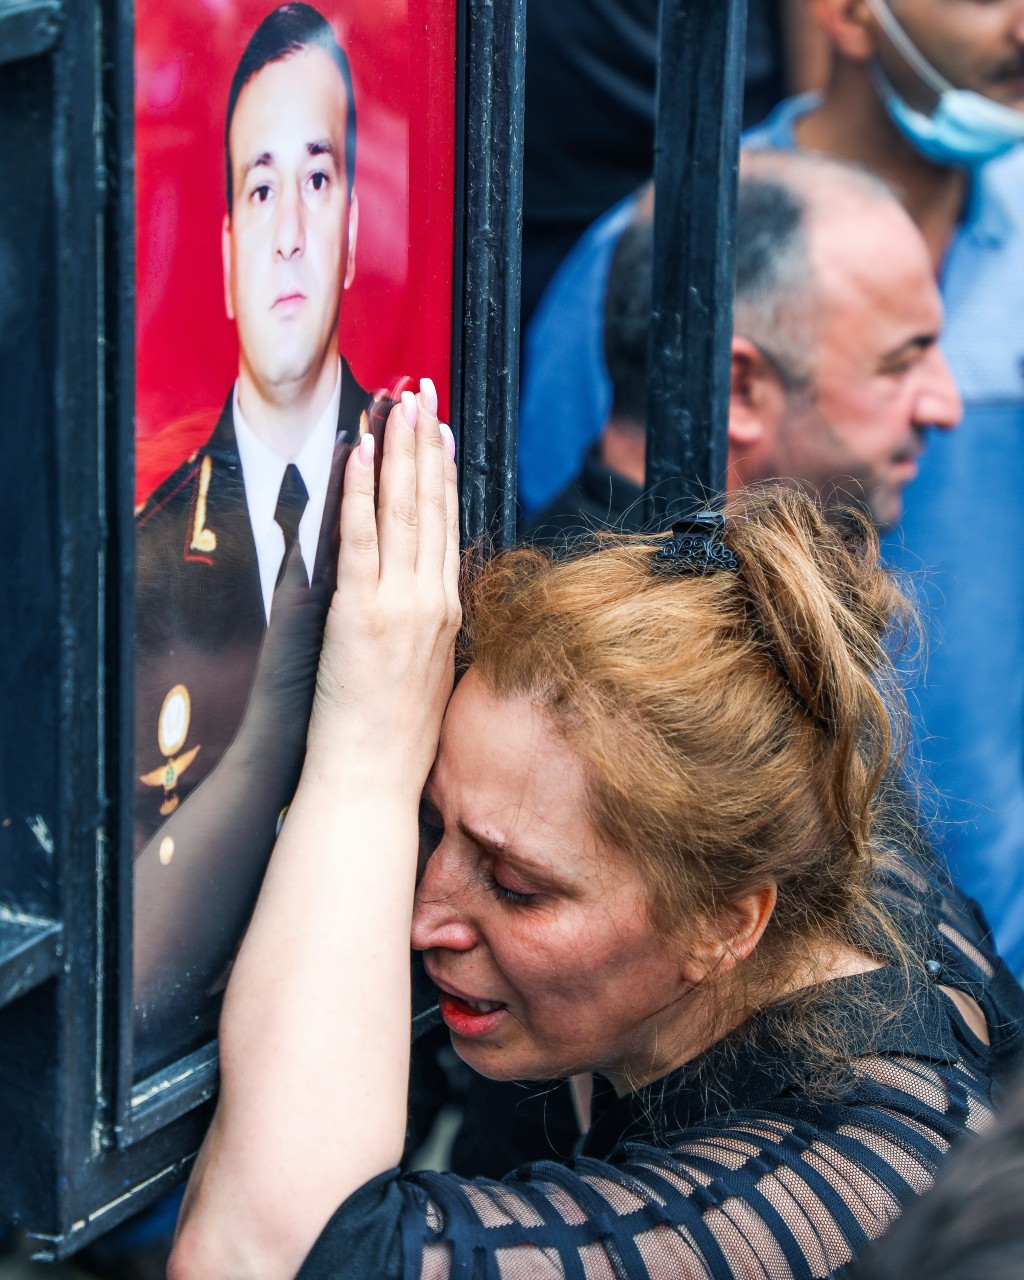 Widow of Maj. Gen. Polad Hashimov, who was killed in fighting Tuesday along with five other servicemen, mourns at his portrait during the funeral cere...